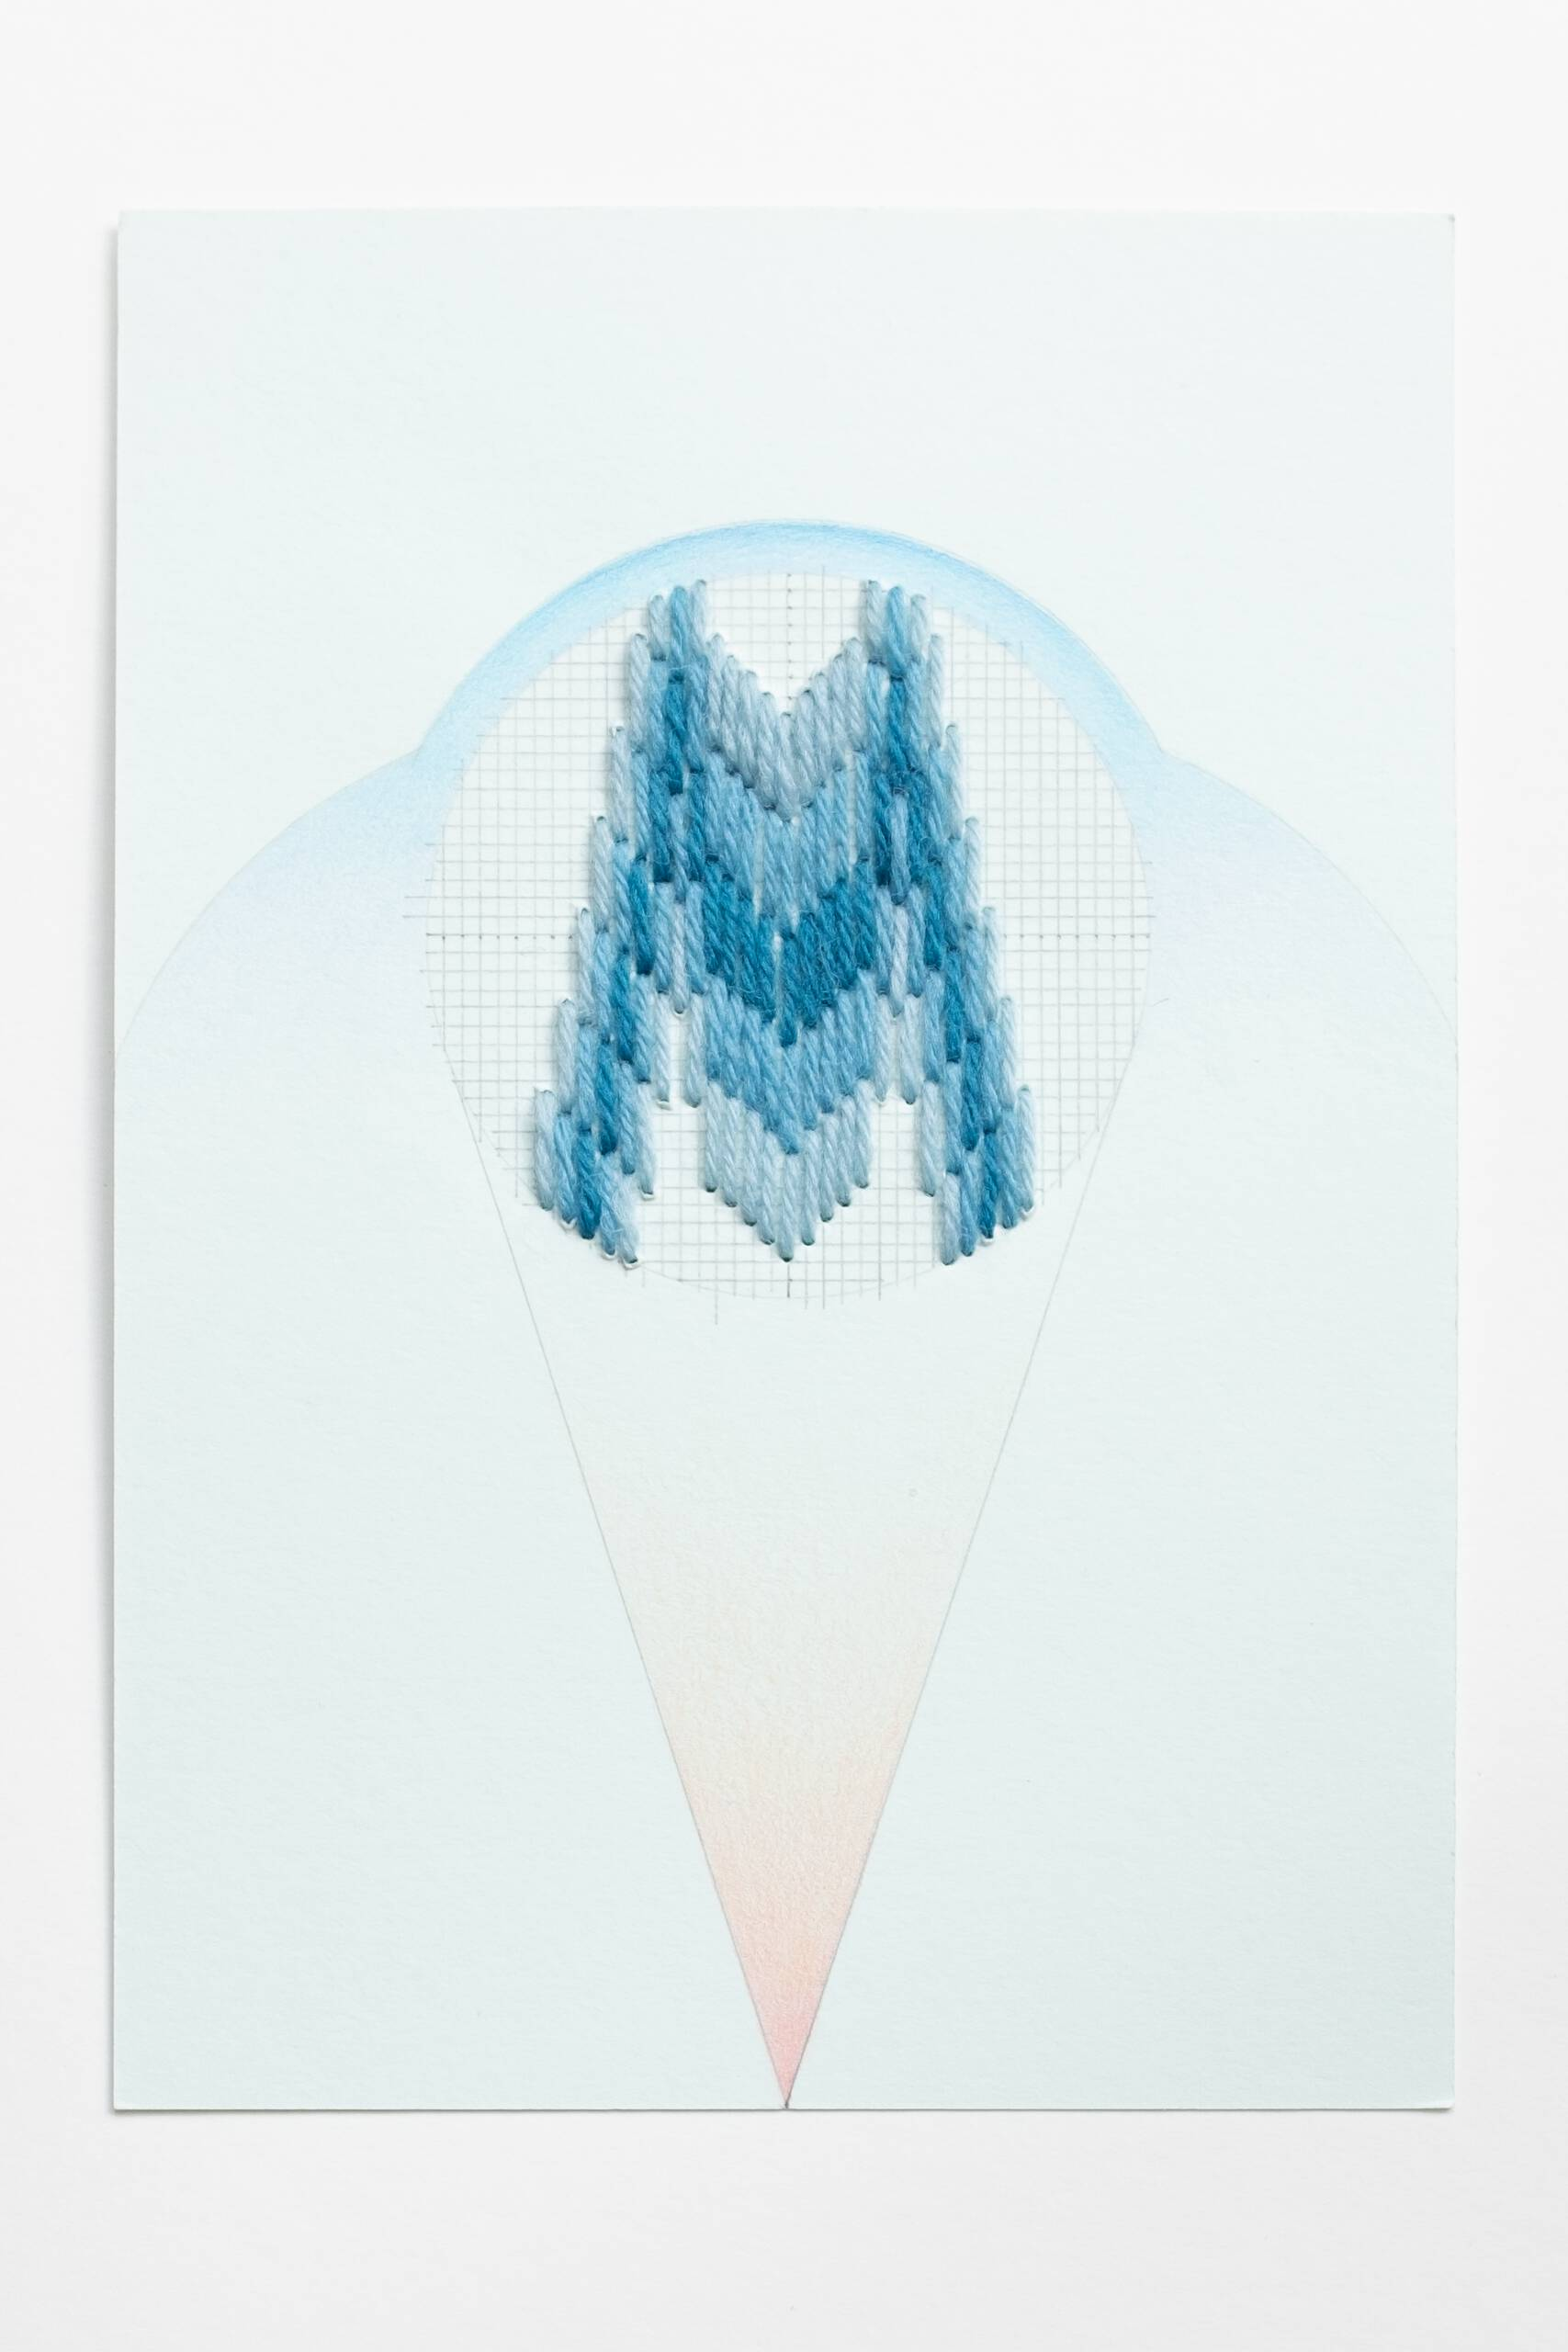 Bargello circle [blue on blue-green], Hand-embroidered wool, pencil and colored pencil on paper, 2020